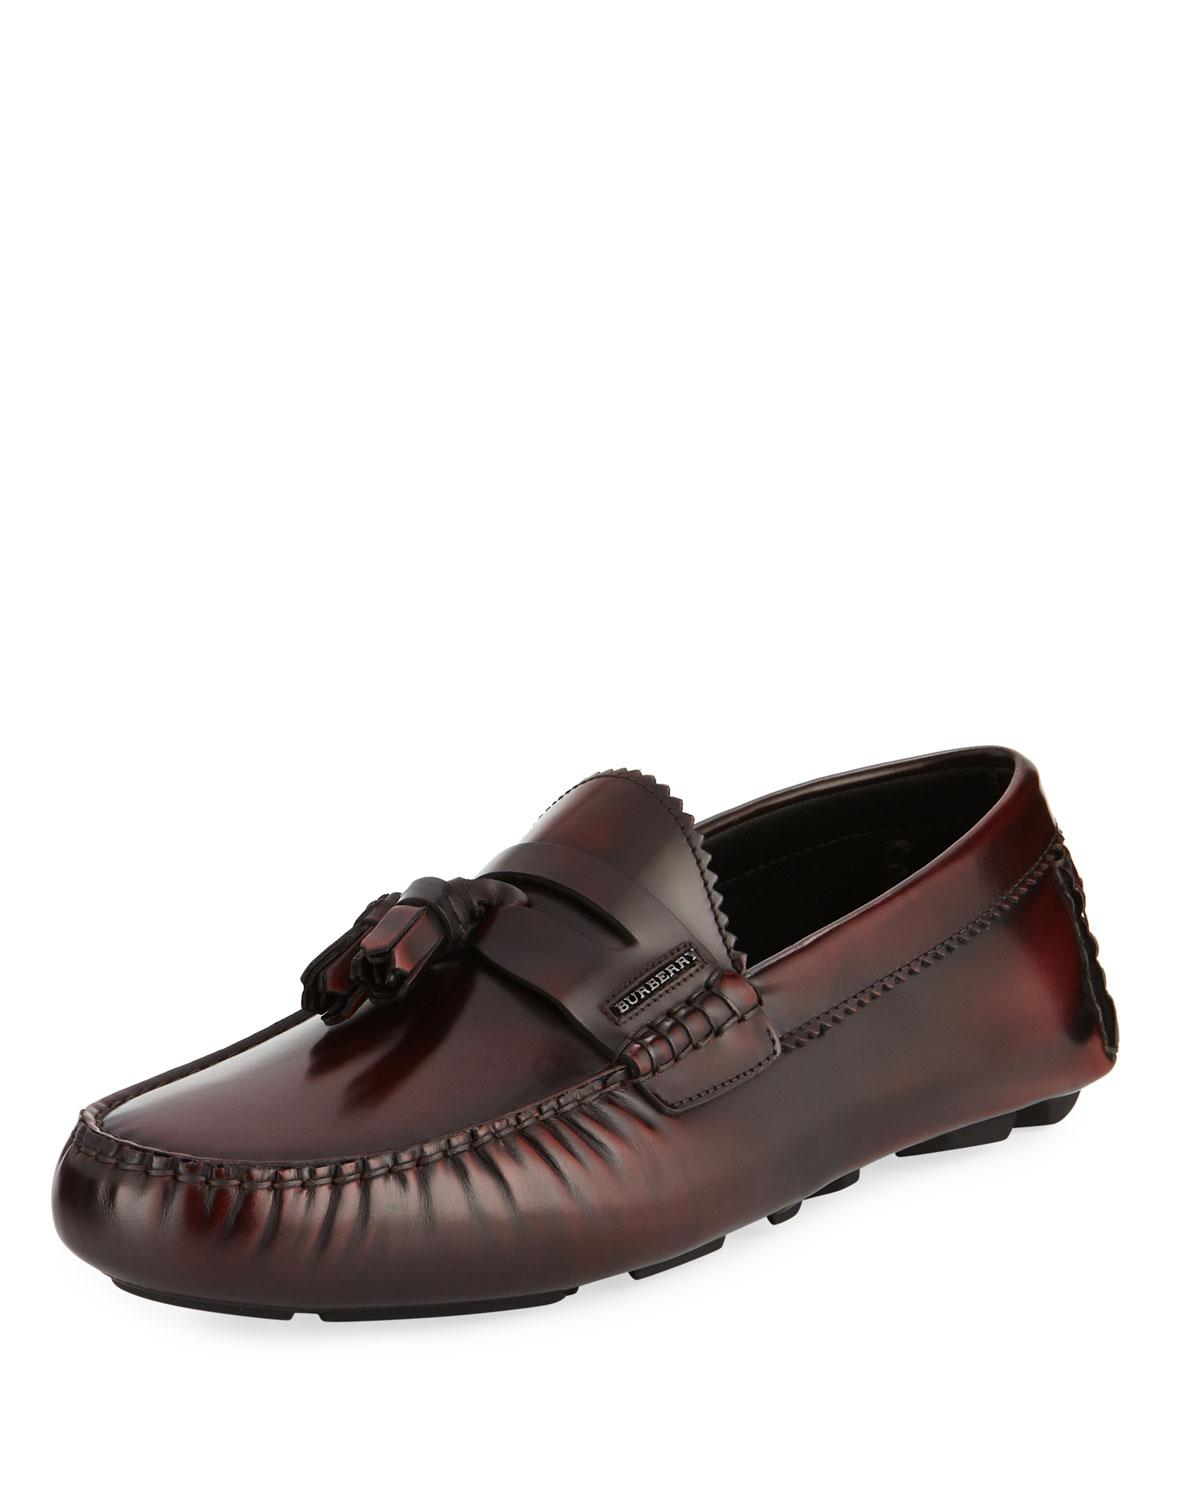 e3fa8a3aac5 Burberry - Multicolor Men s Antiqued Penny Loafers for Men - Lyst. View  fullscreen